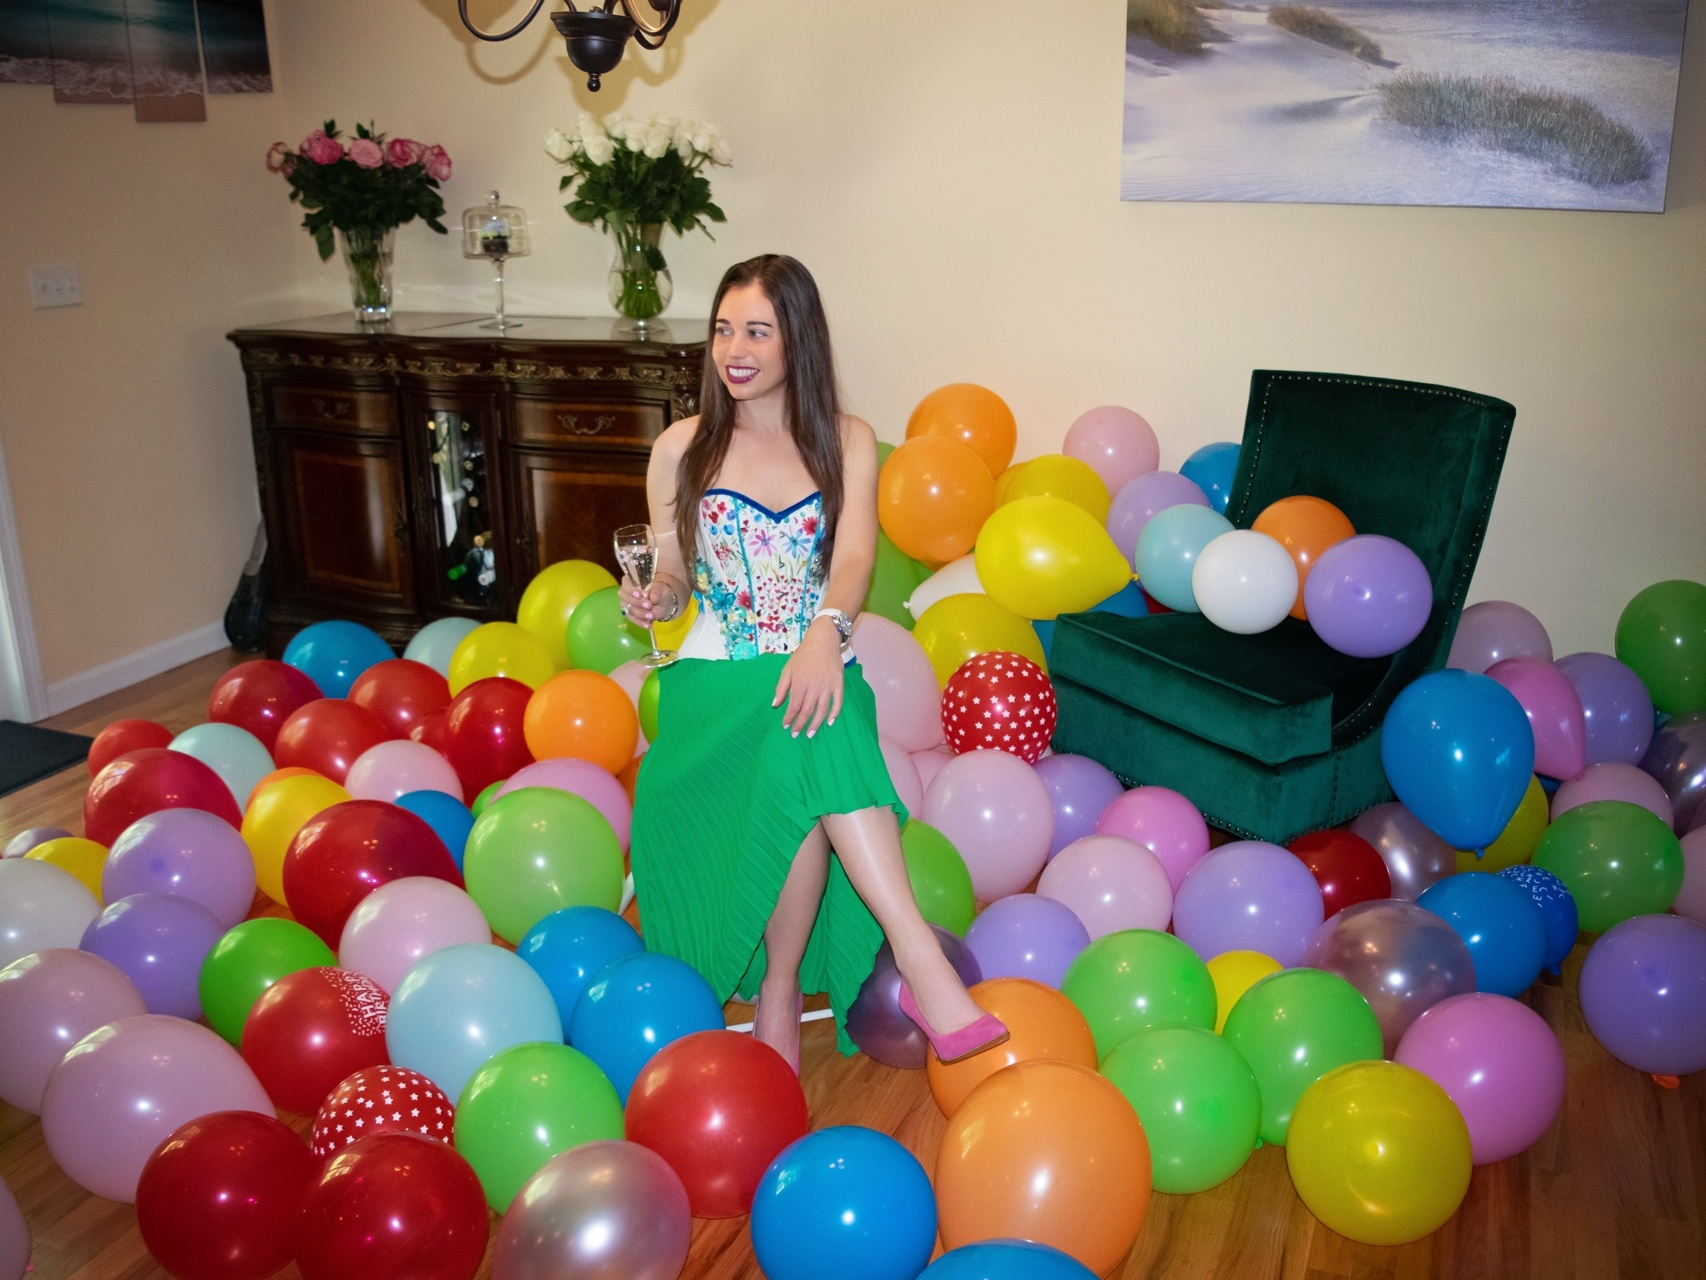 Stella's birthday surrounded by balloons celebrating with champagne.